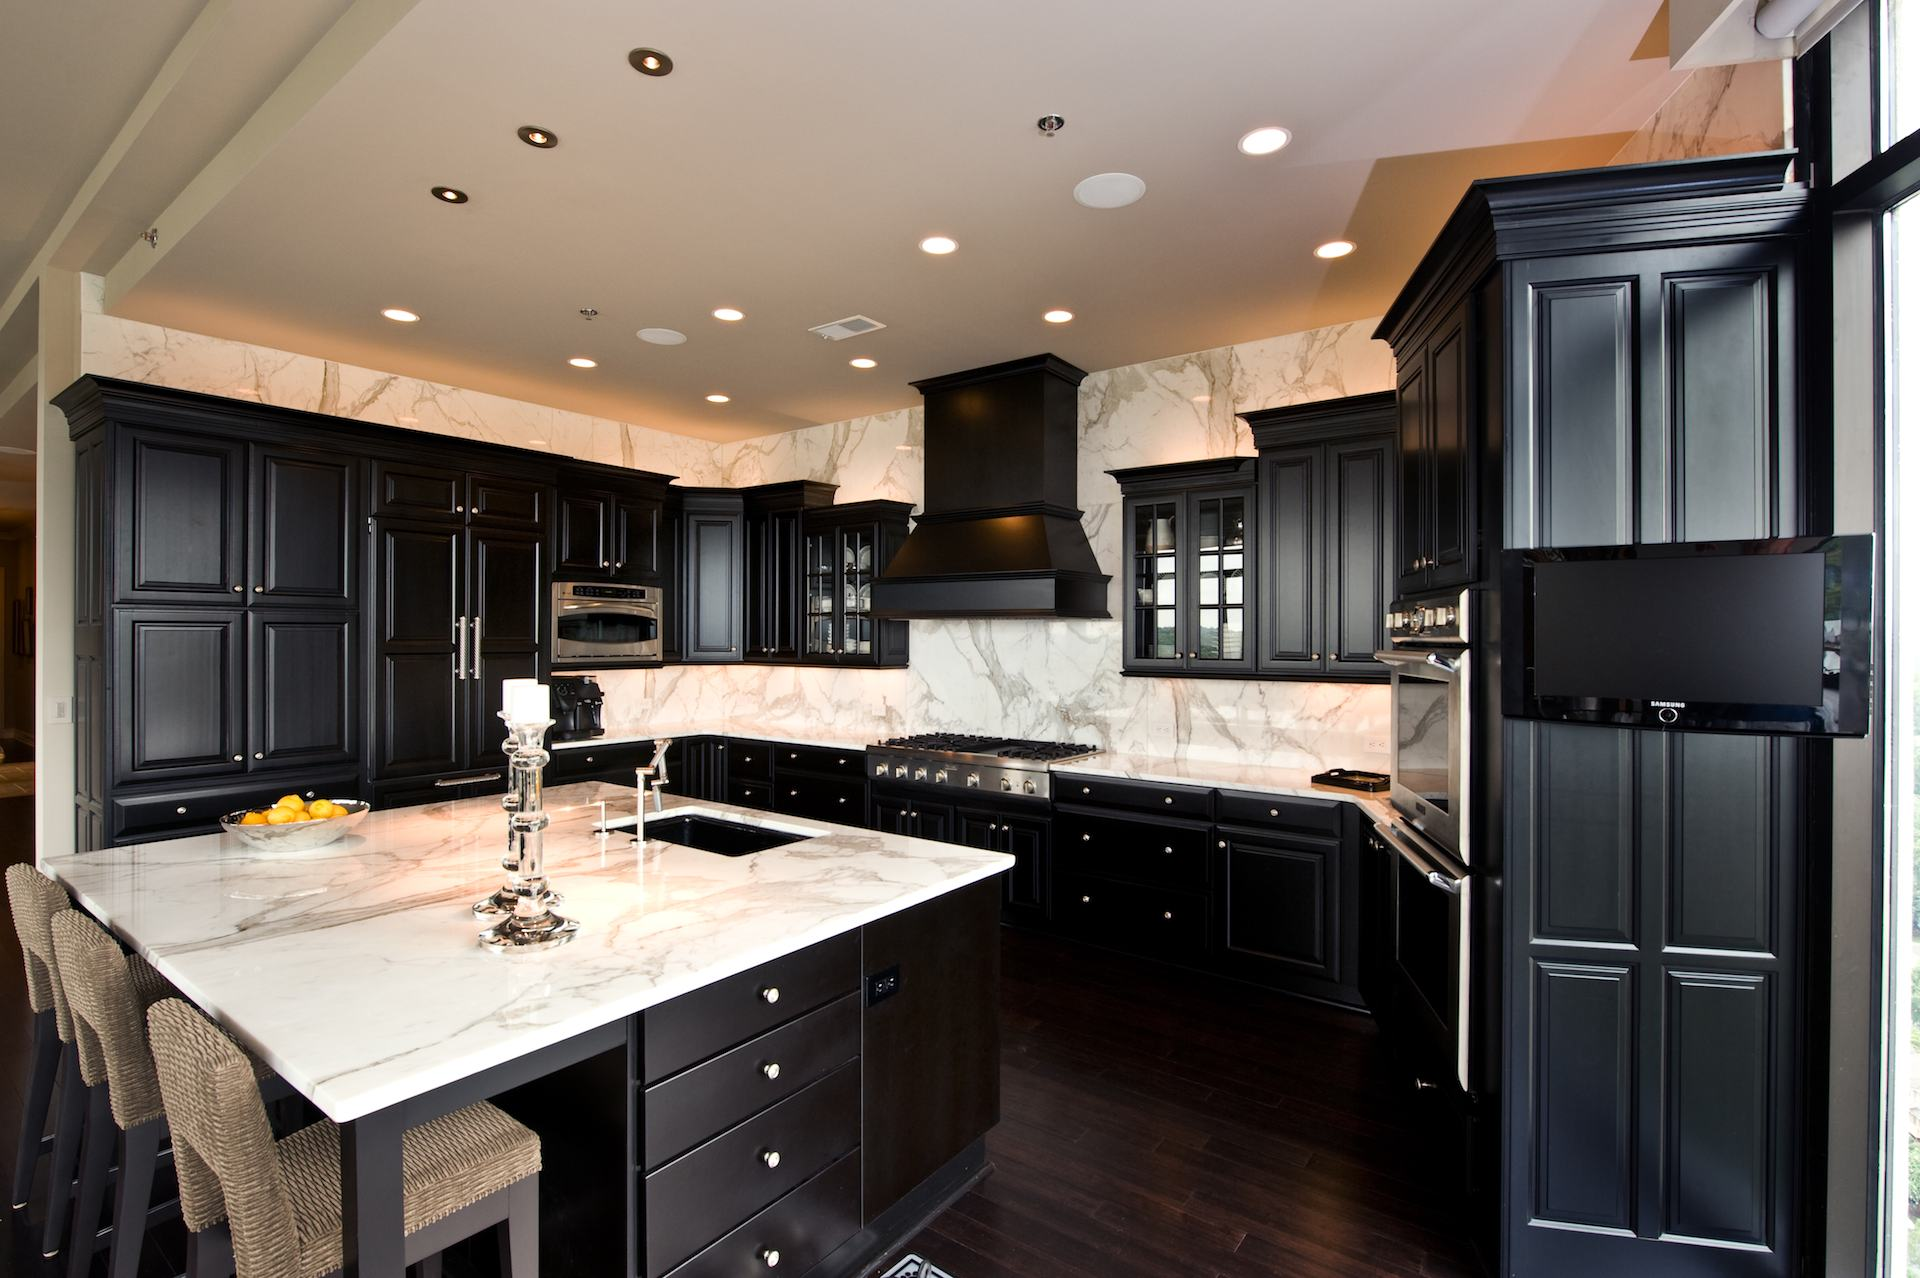 marble kitchen marble kitchen countertops Artisan Stone Collection marble kitchen